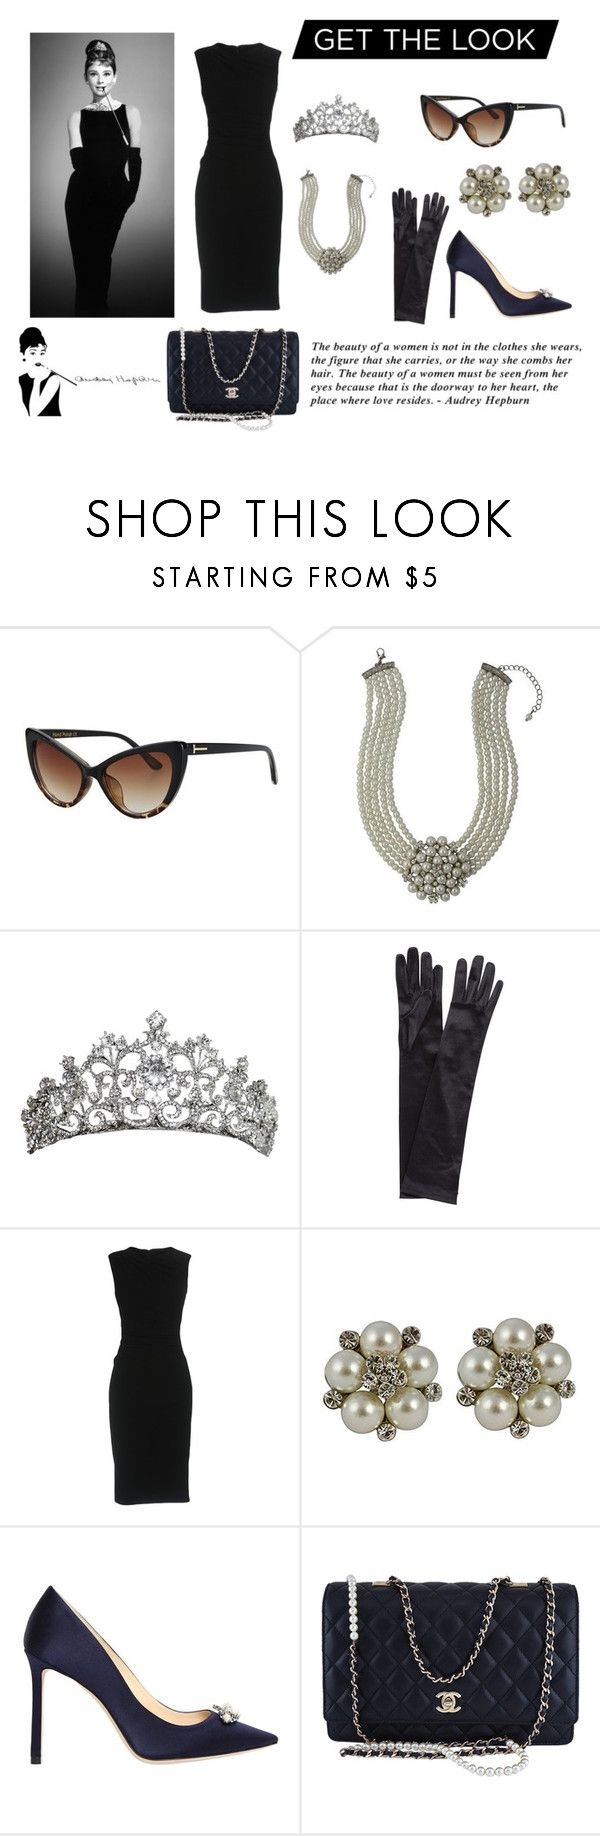 """""""Get The Look Of Audrey Hepburn"""" by alondra-orozco-i ❤ liked on Polyvore featuring John Lewis, Dolce&Gabbana, Jimmy Choo, Chanel and GetTheLook"""